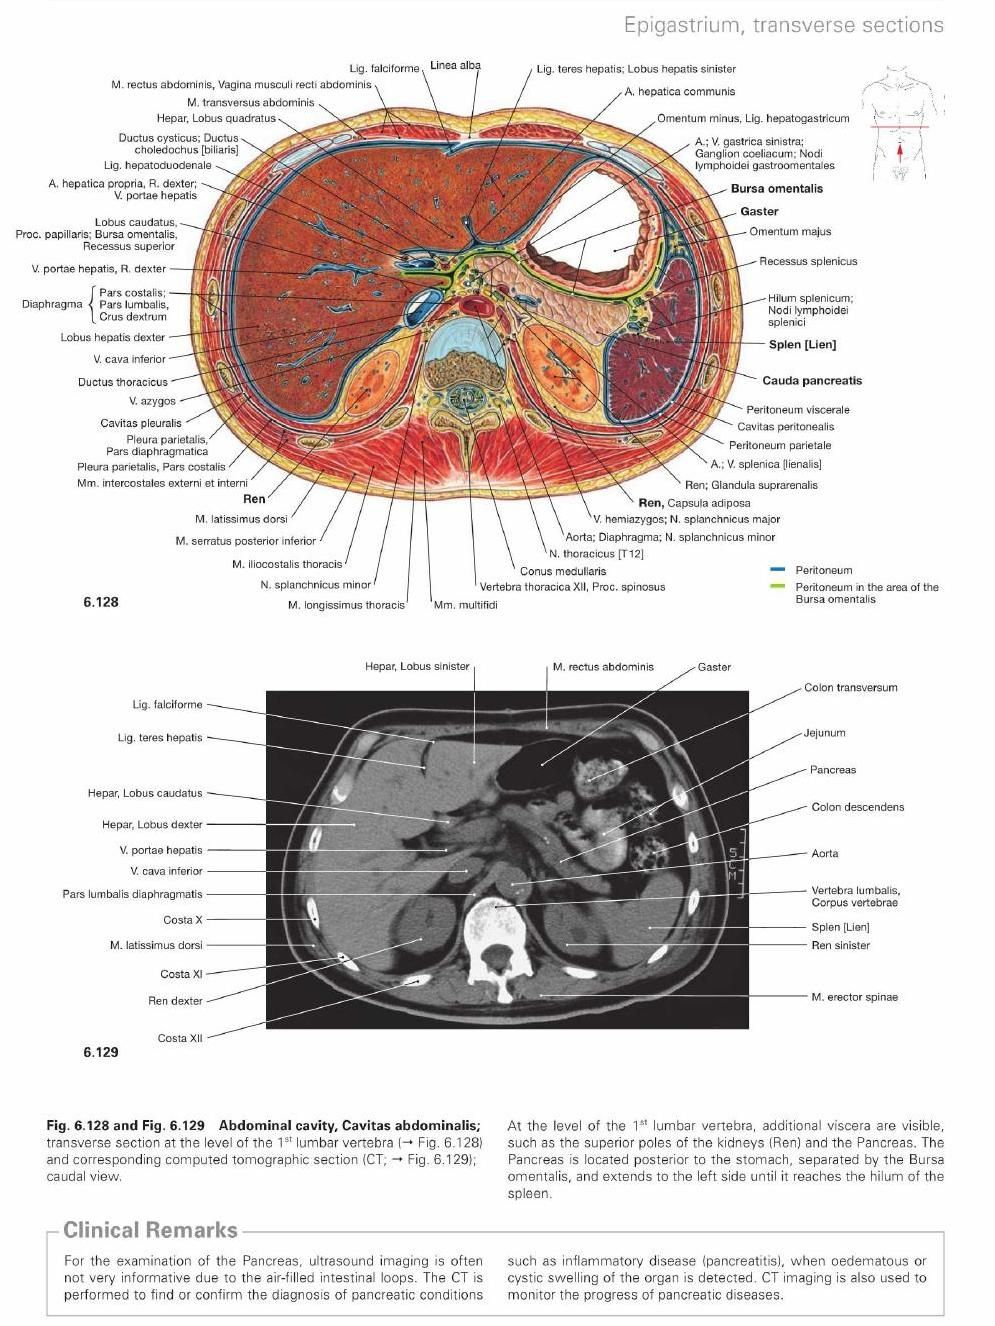 ClippedOnIssuu from Atlas of human anatomy | Radiography | Pinterest ...